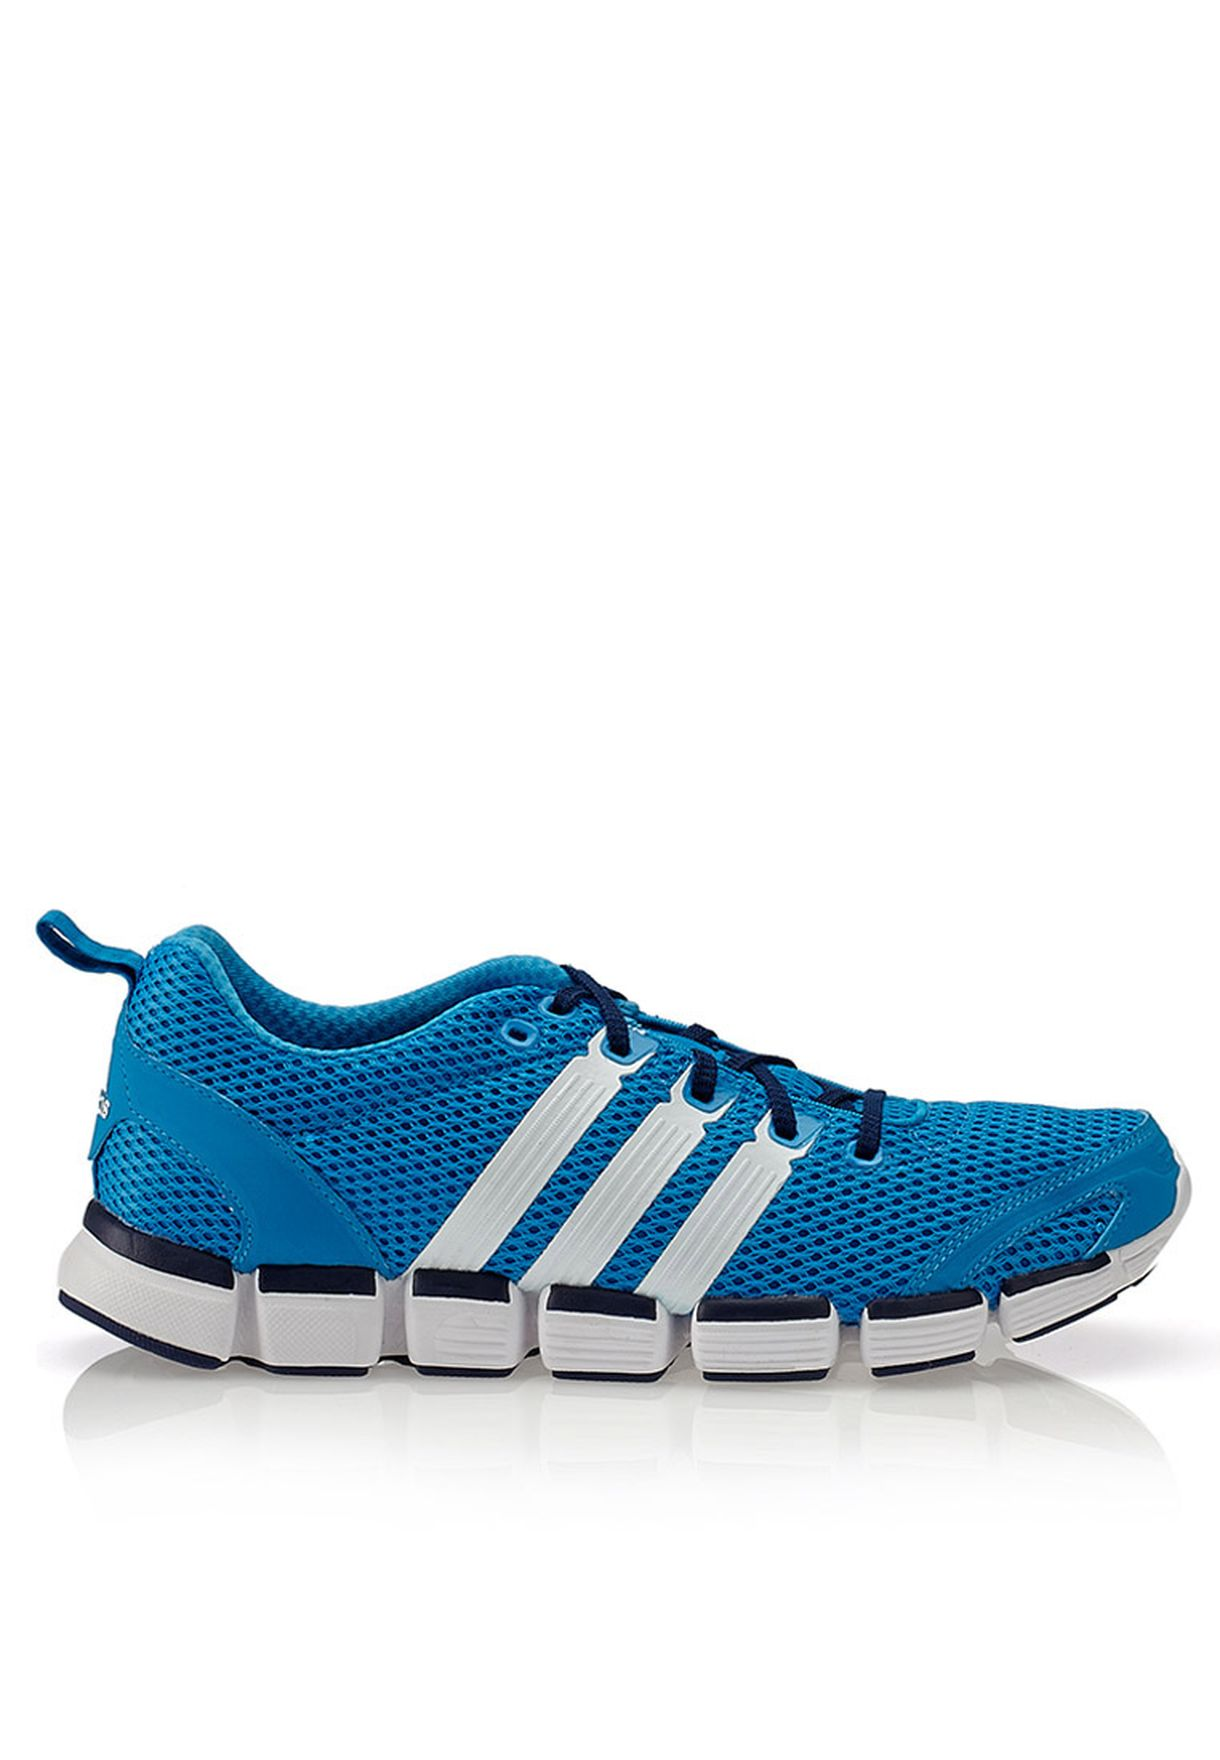 ADIDAS Cc Chill M Blue Running Shoes